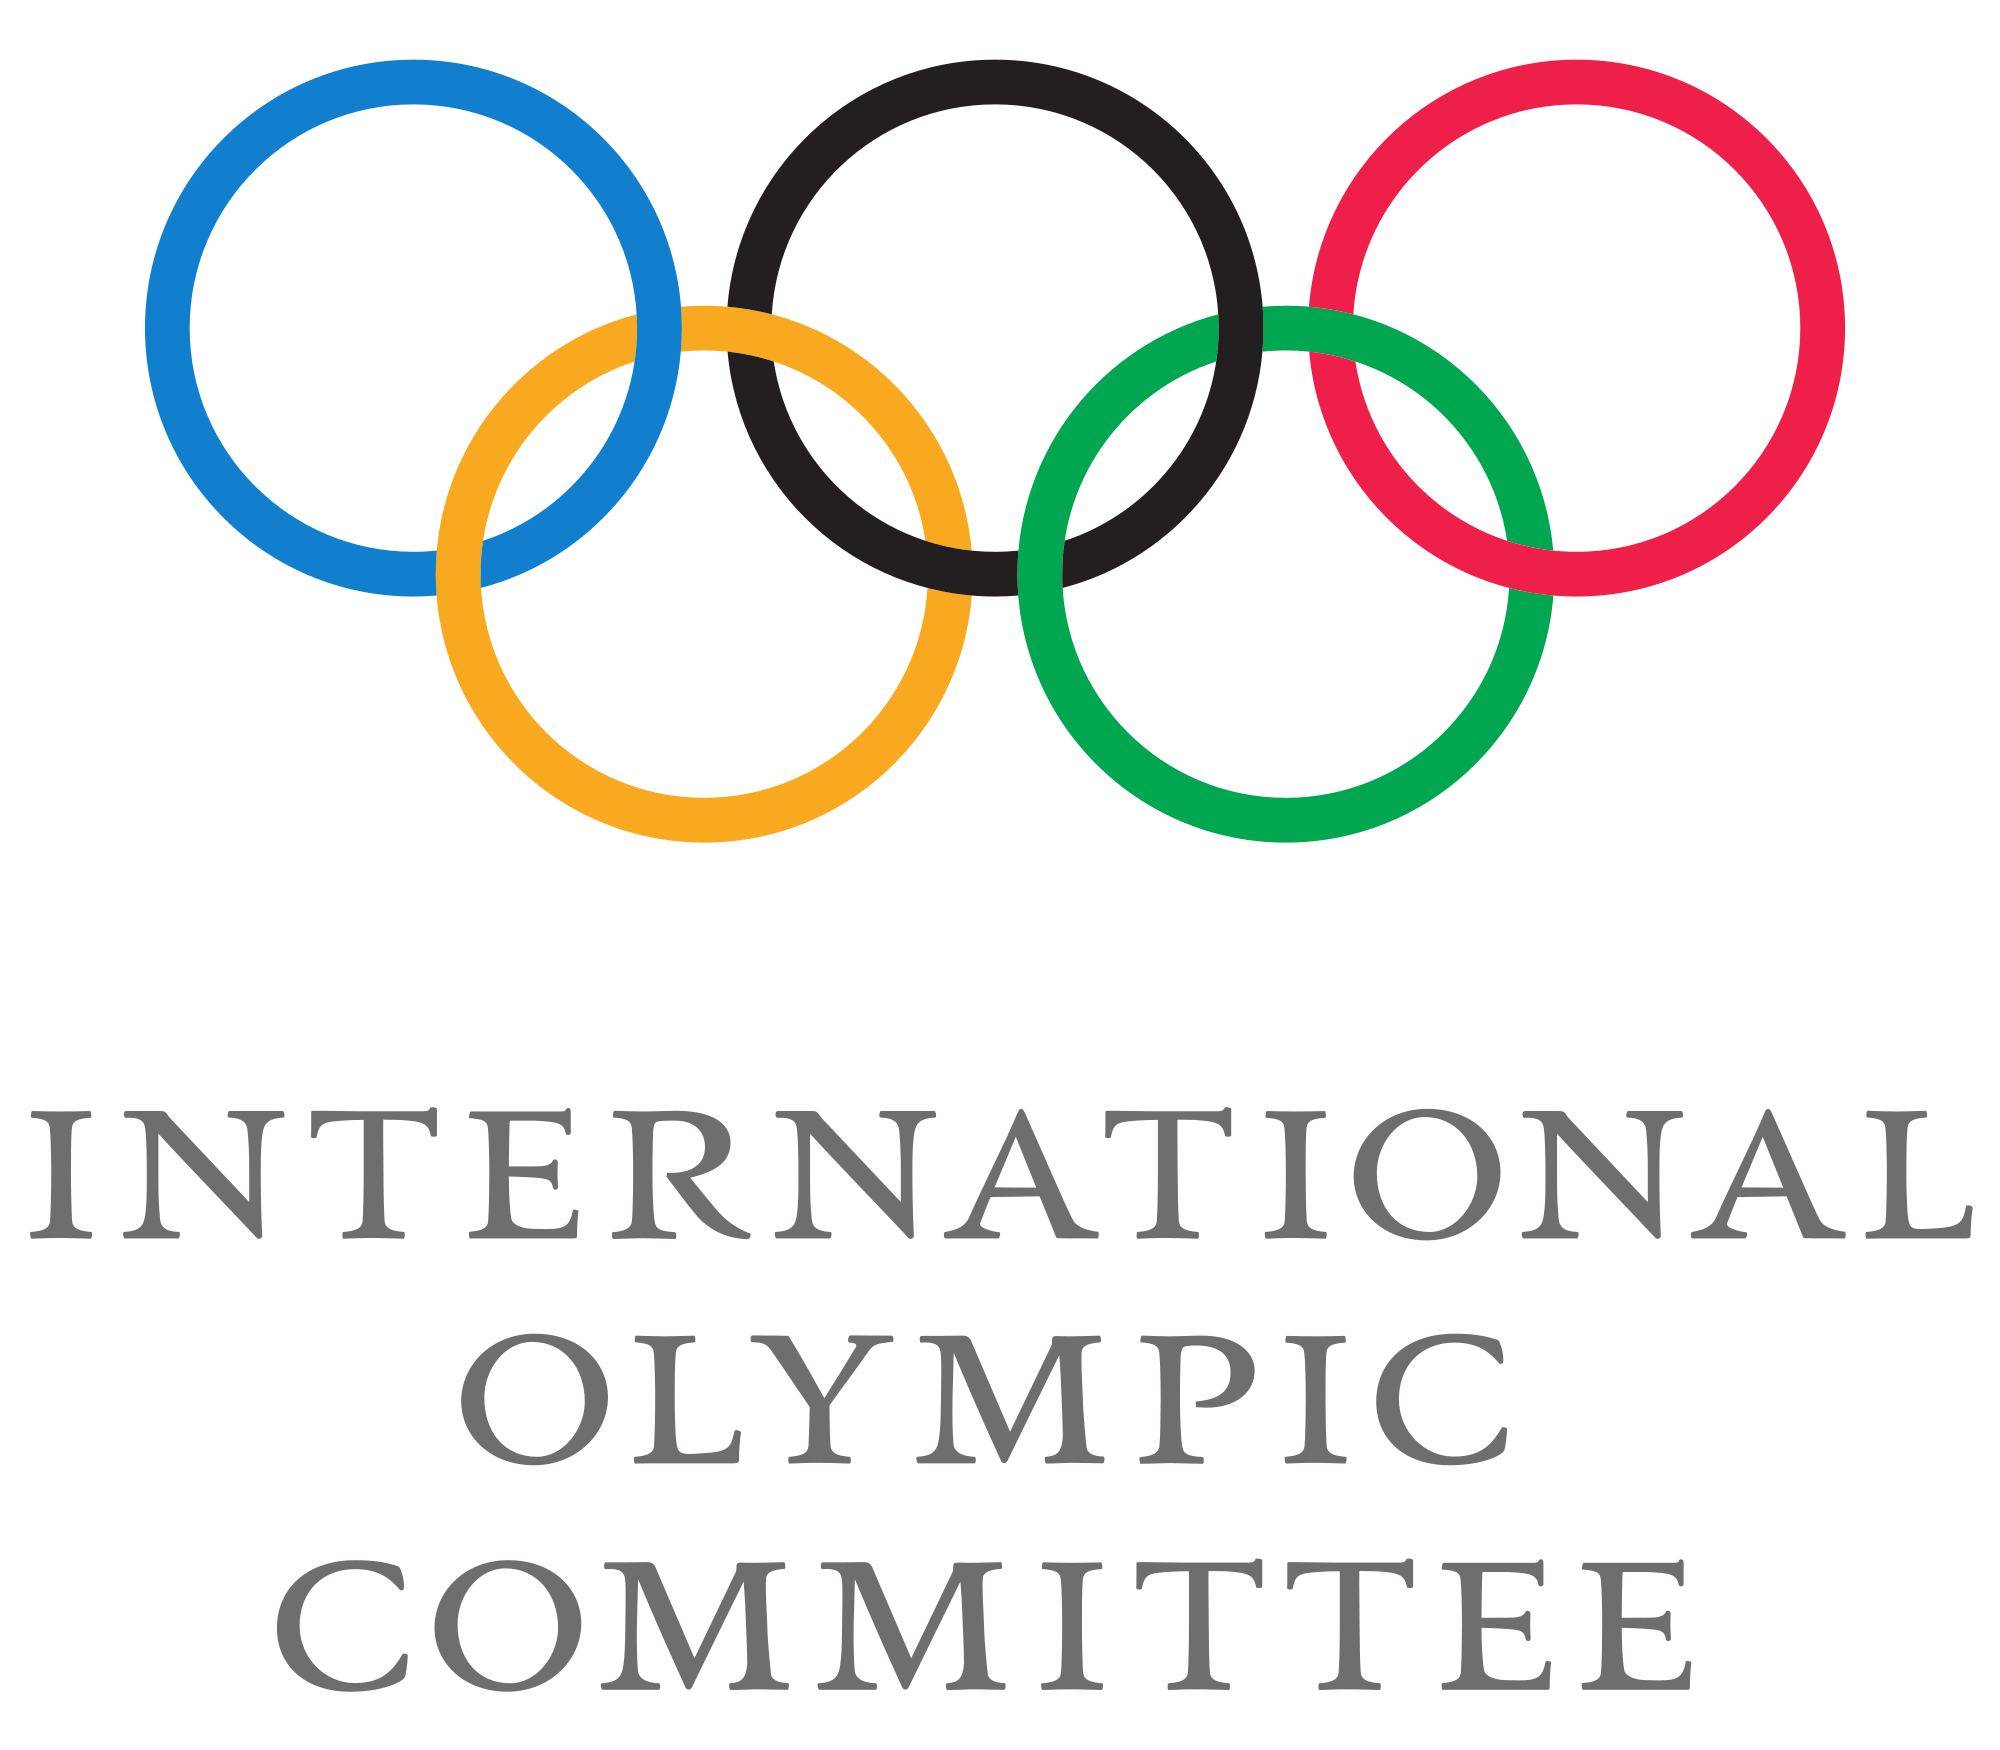 Pin by CK on LOGOS (With images) Olympic committee, Olympics